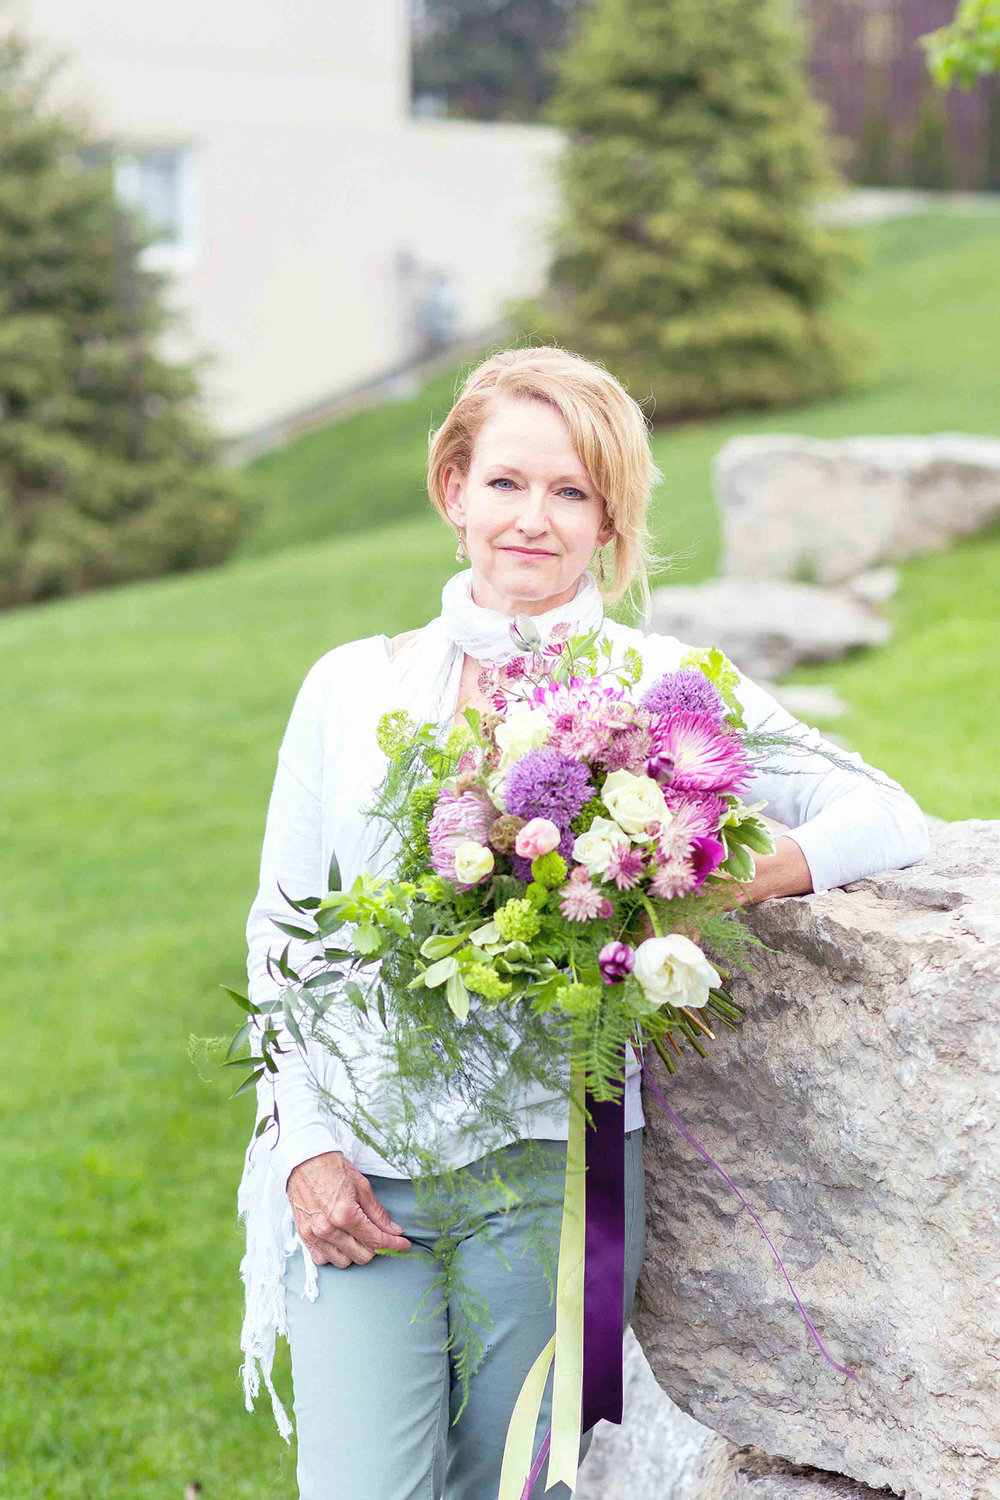 Wine-Country-Floral-Wedding-Florals-Vineyard-Bride-Photo-By-Jessica-Little-Photography-017.jpg